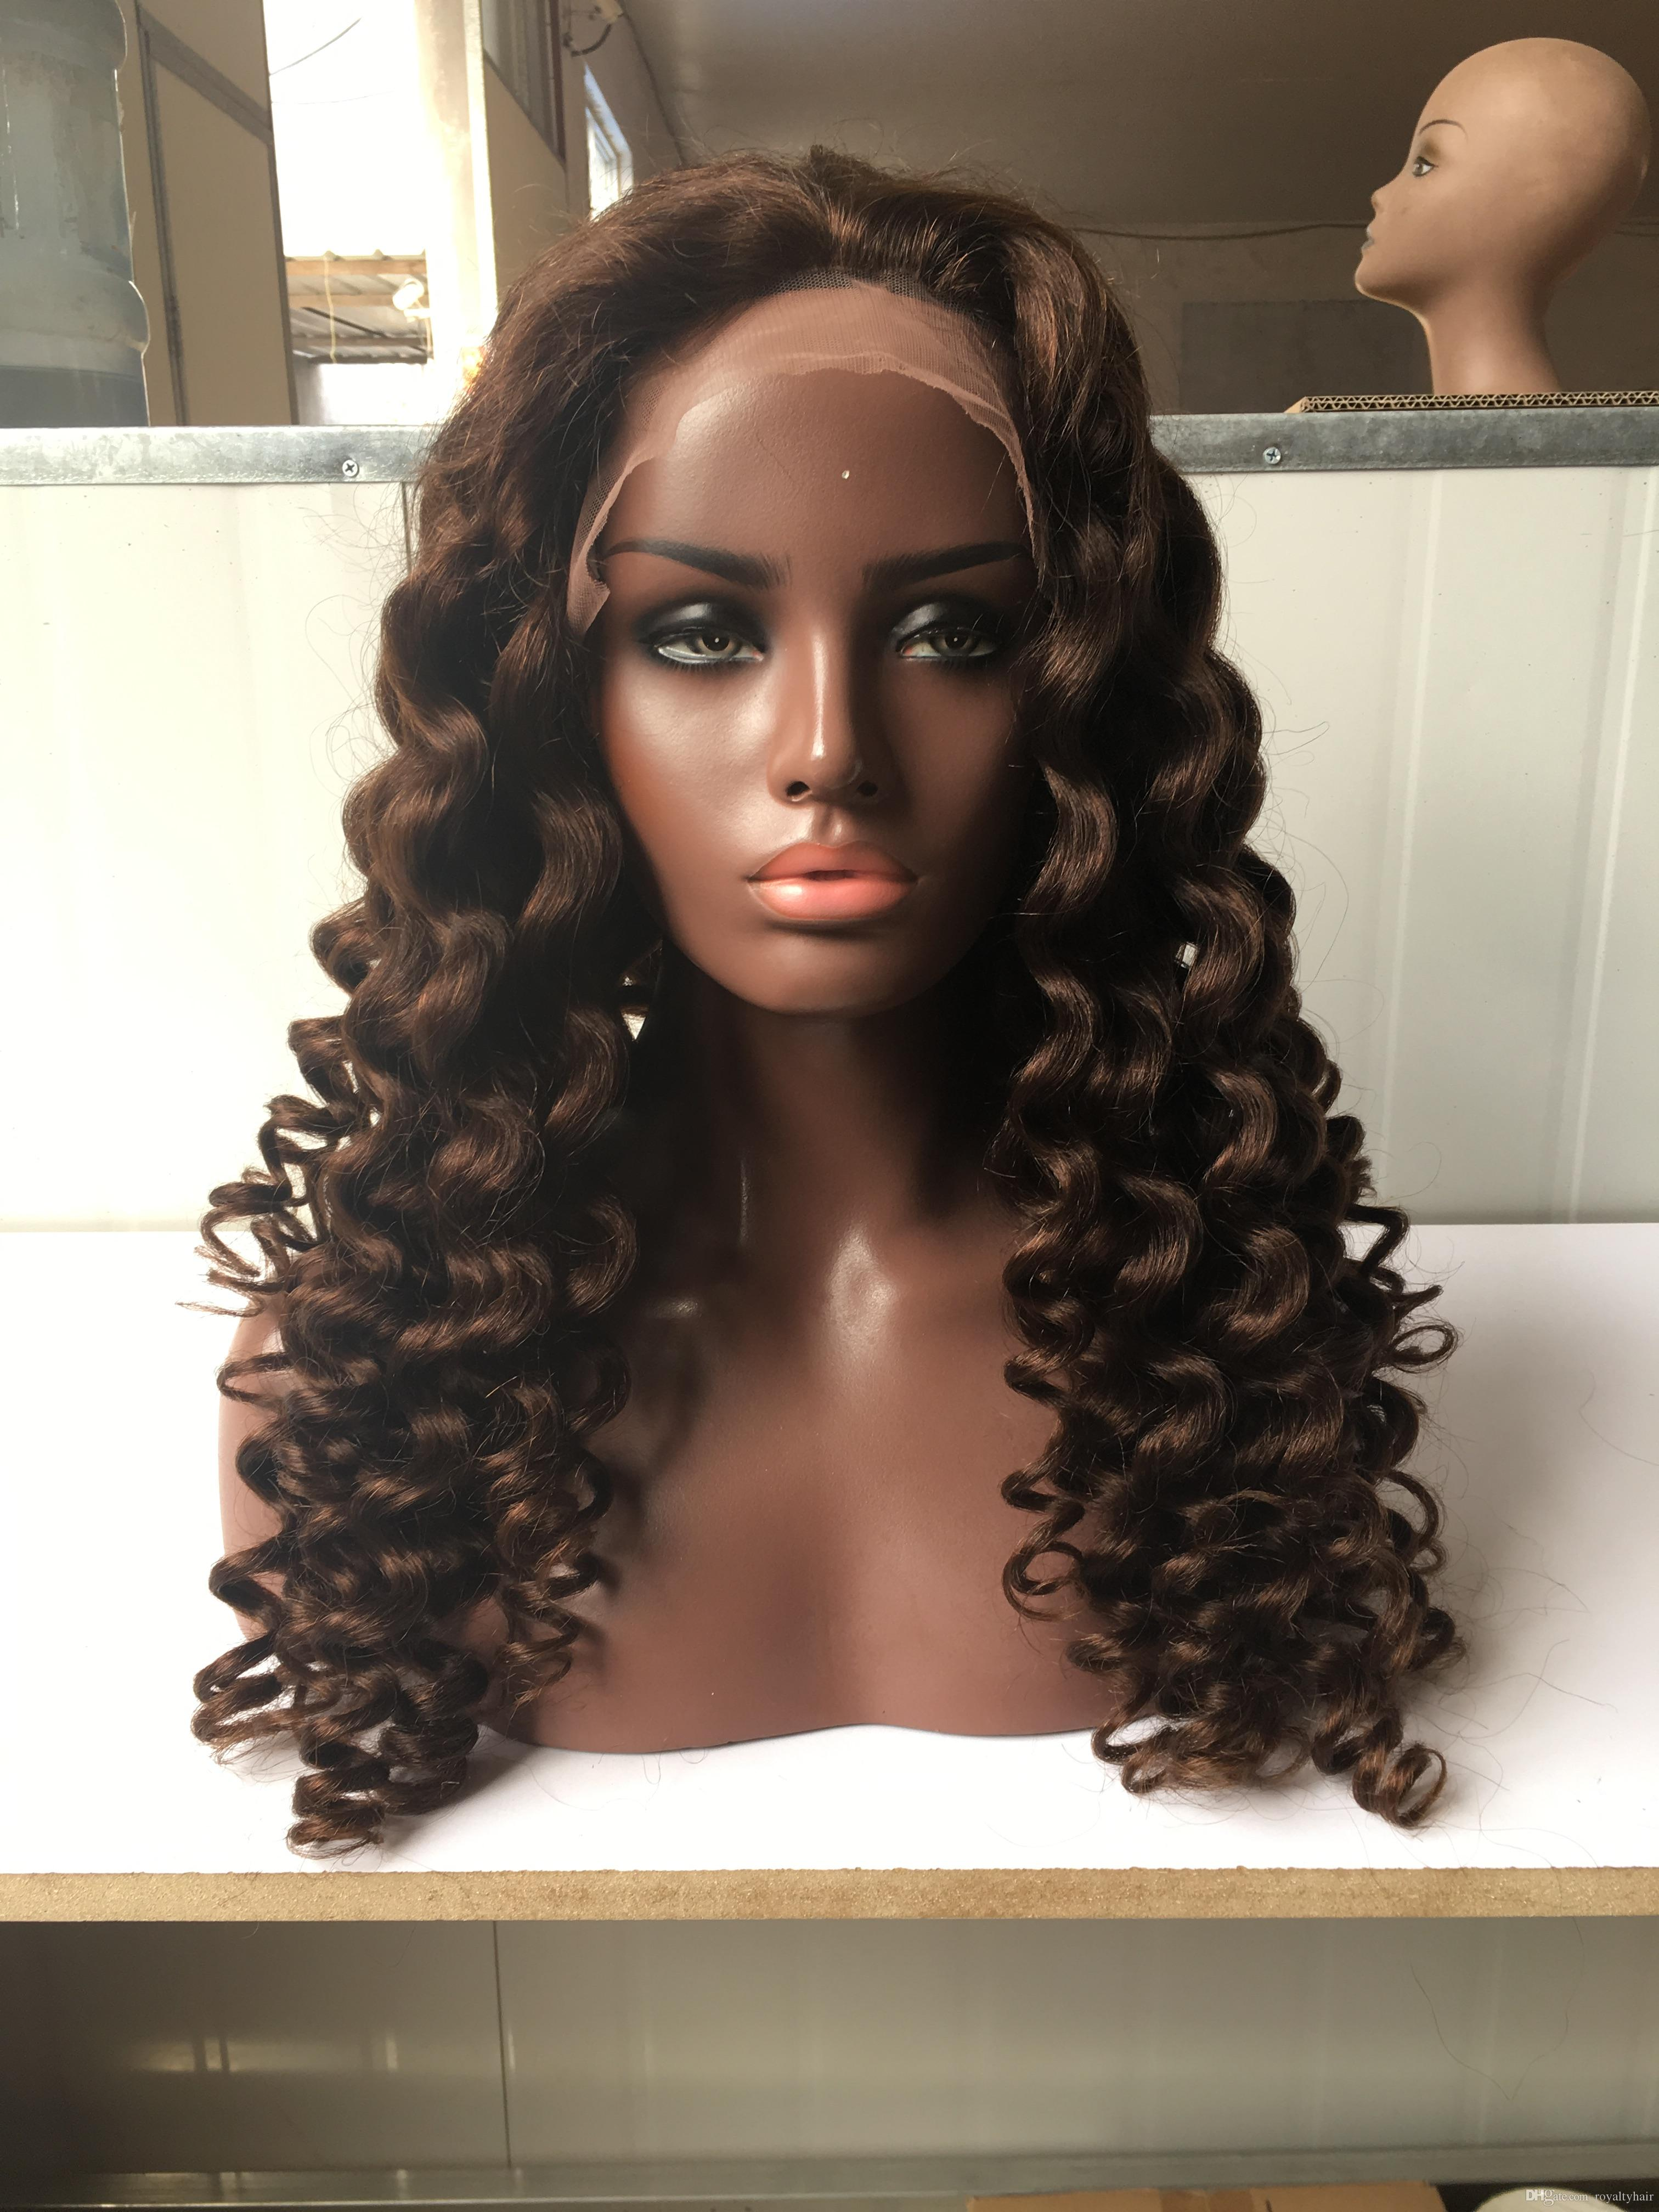 Riya Hair Full Lace Human Hair Wigs Afro Kinky Curly 1b Black Brazilian Remy Hair Pre Plucked Lace Wigs For Women With Baby Hair Human Hair Lace Wigs Hair Extensions & Wigs